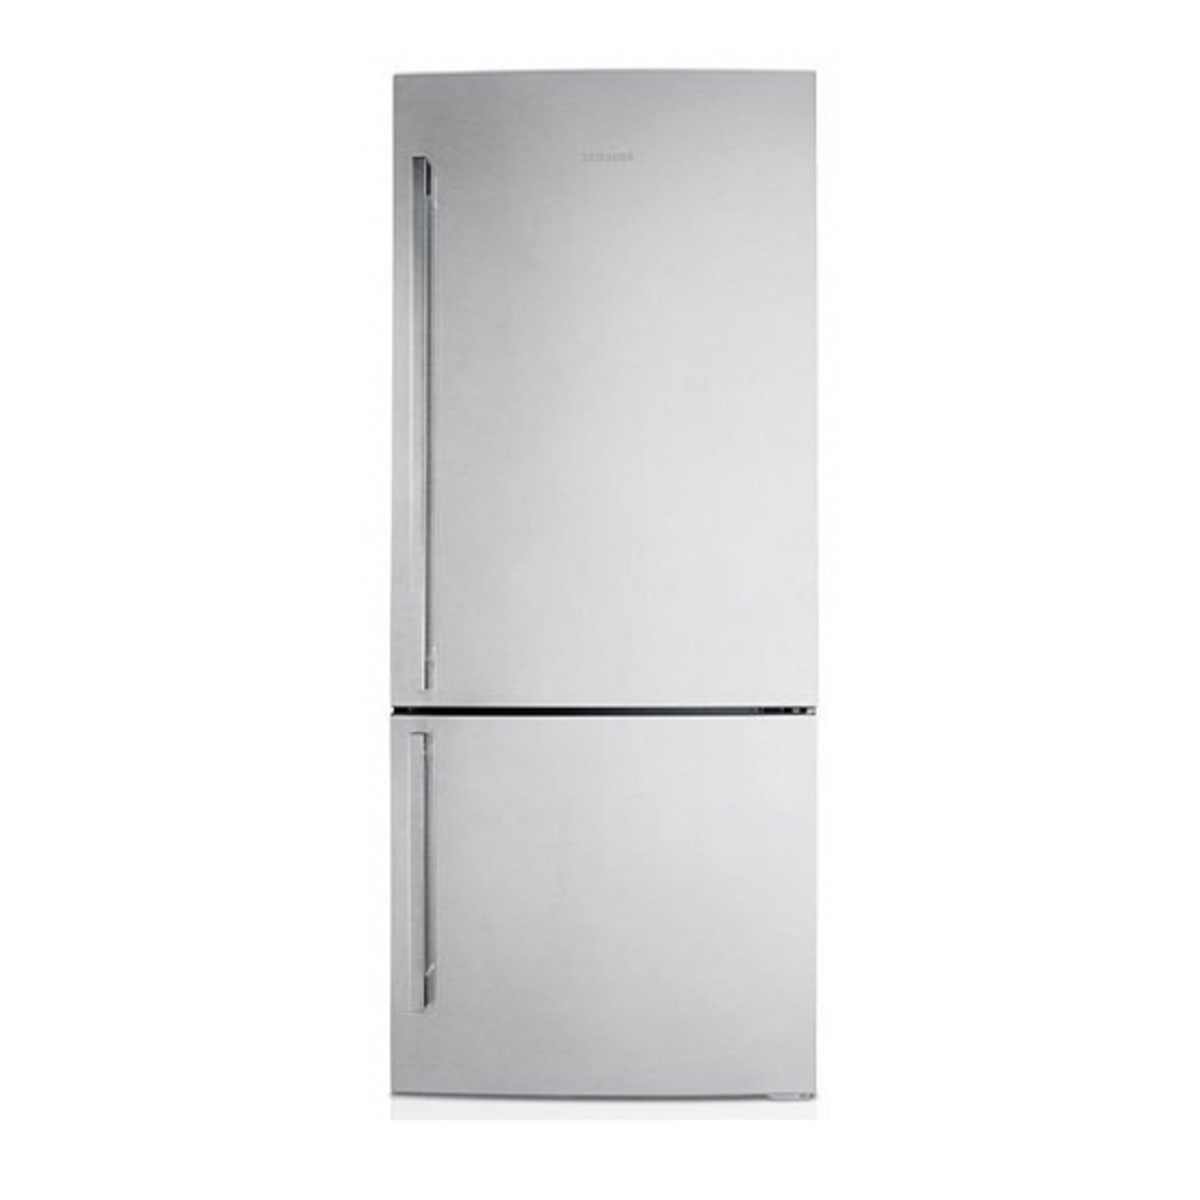 Samsung SRL458ELS 458L Bottom Mount Fridge